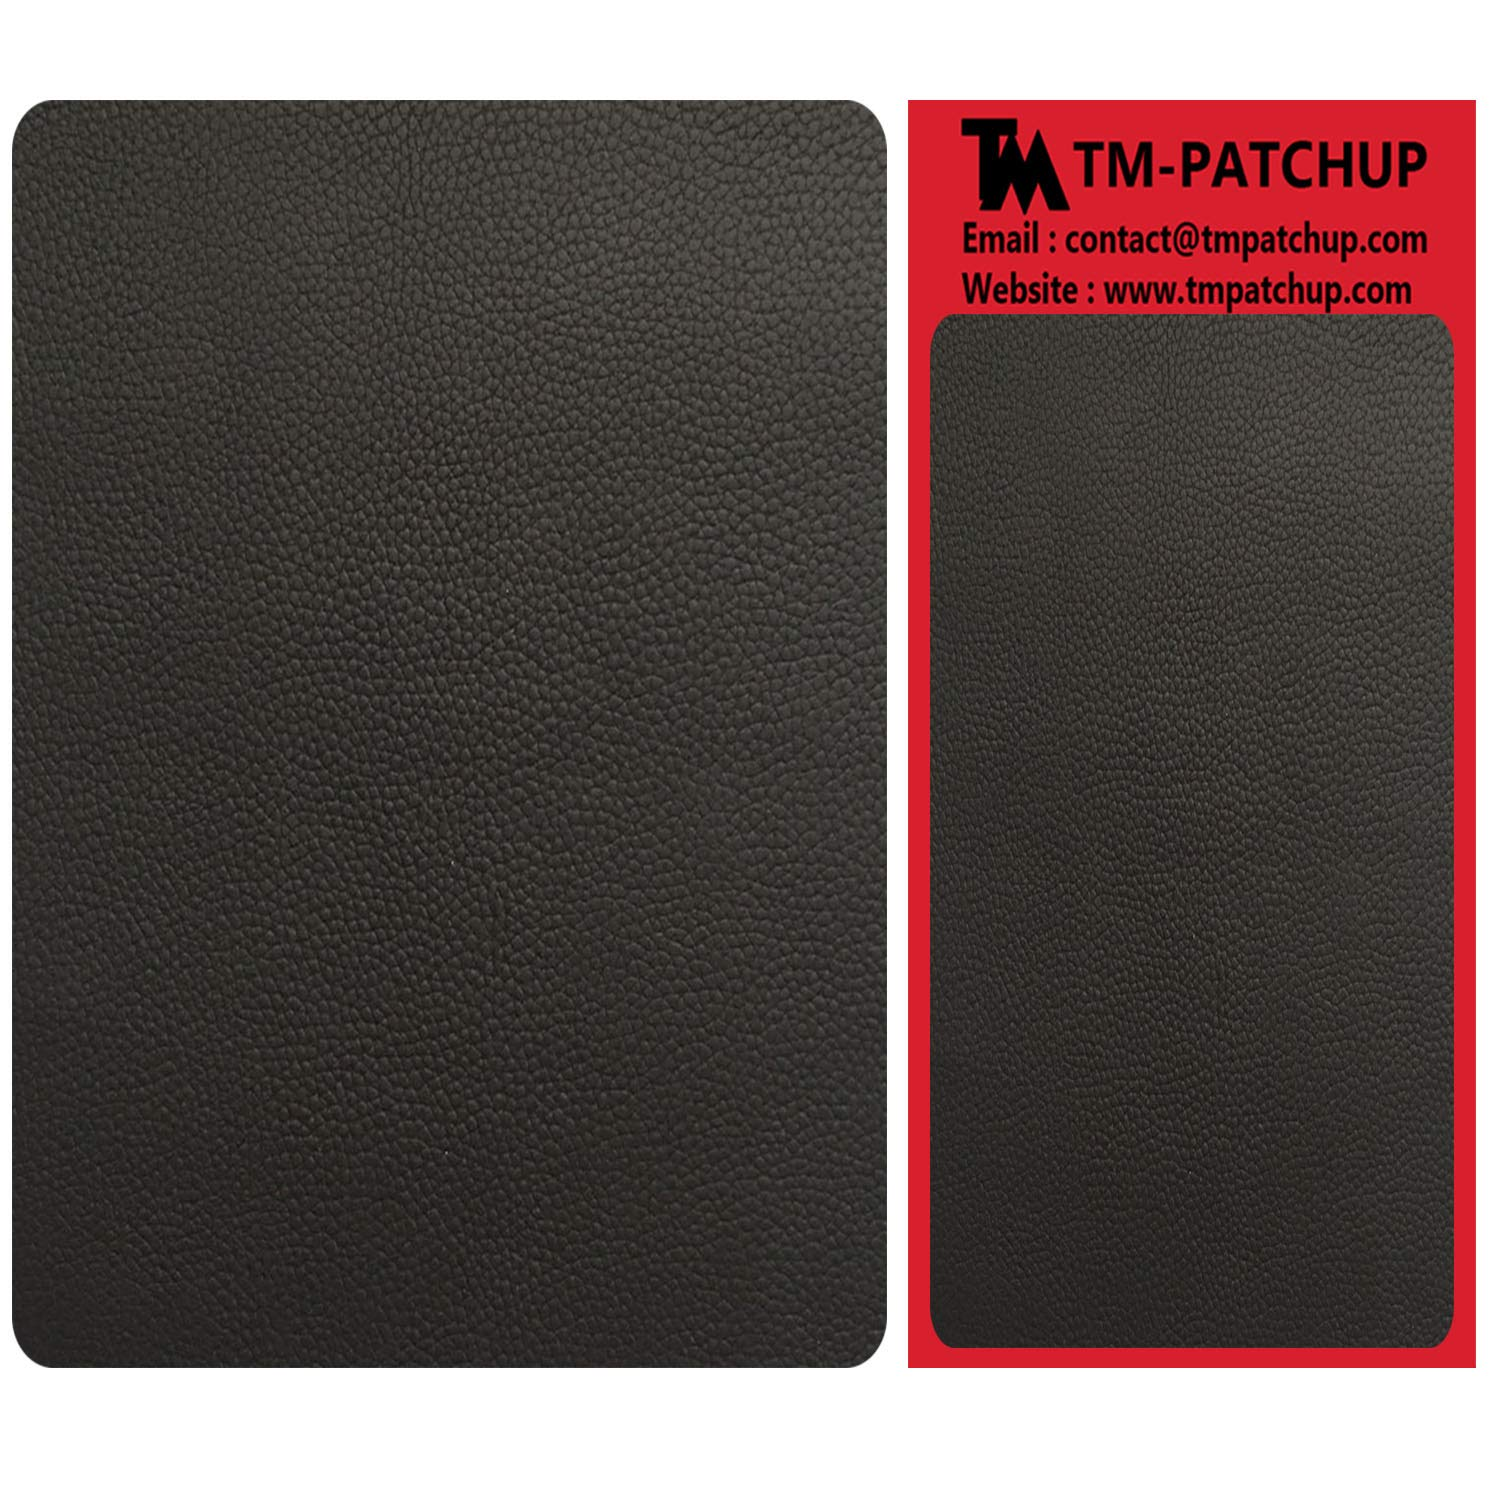 2 Pieces Black Leather and Vinyl Repair Patch by TMgroup, Genuine Faux Leather Repair Patch, Peel and Stick for Couch, Sofa, car seat, Hand Bag,Furniture, Jacket, Large Size 3'' x 6''